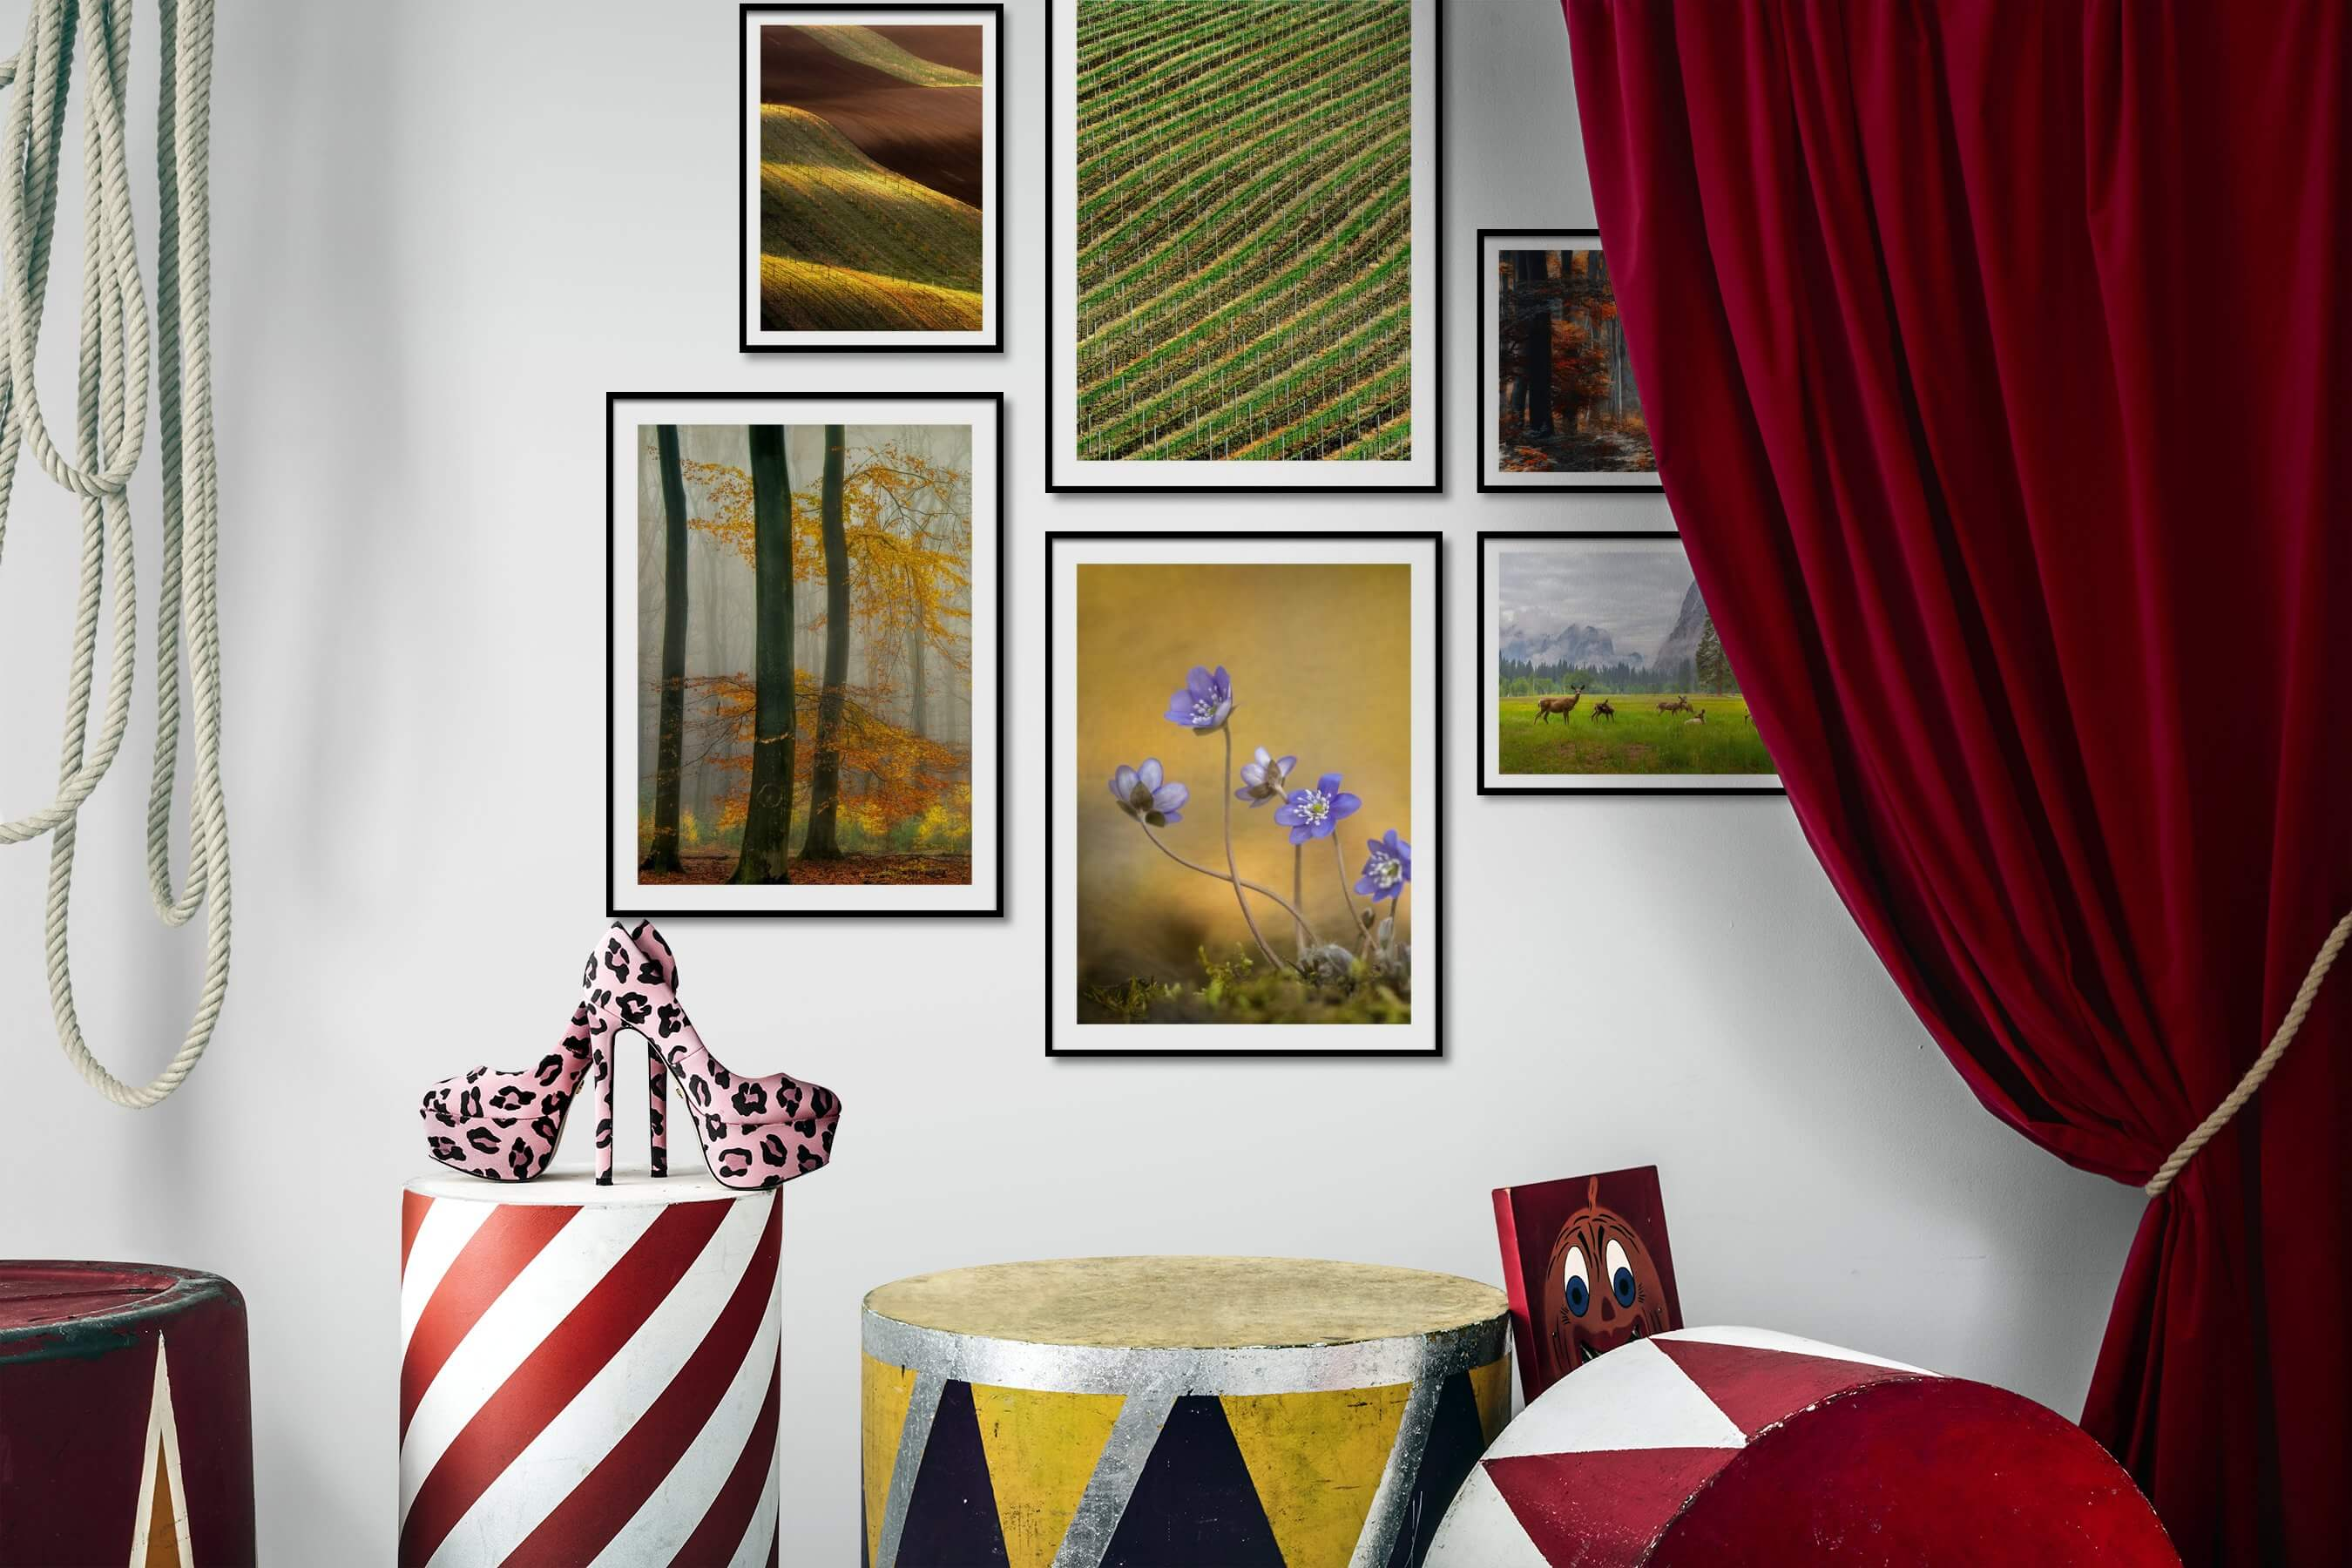 Gallery wall idea with six framed pictures arranged on a wall depicting For the Moderate, Country Life, Nature, Flowers & Plants, and Animals